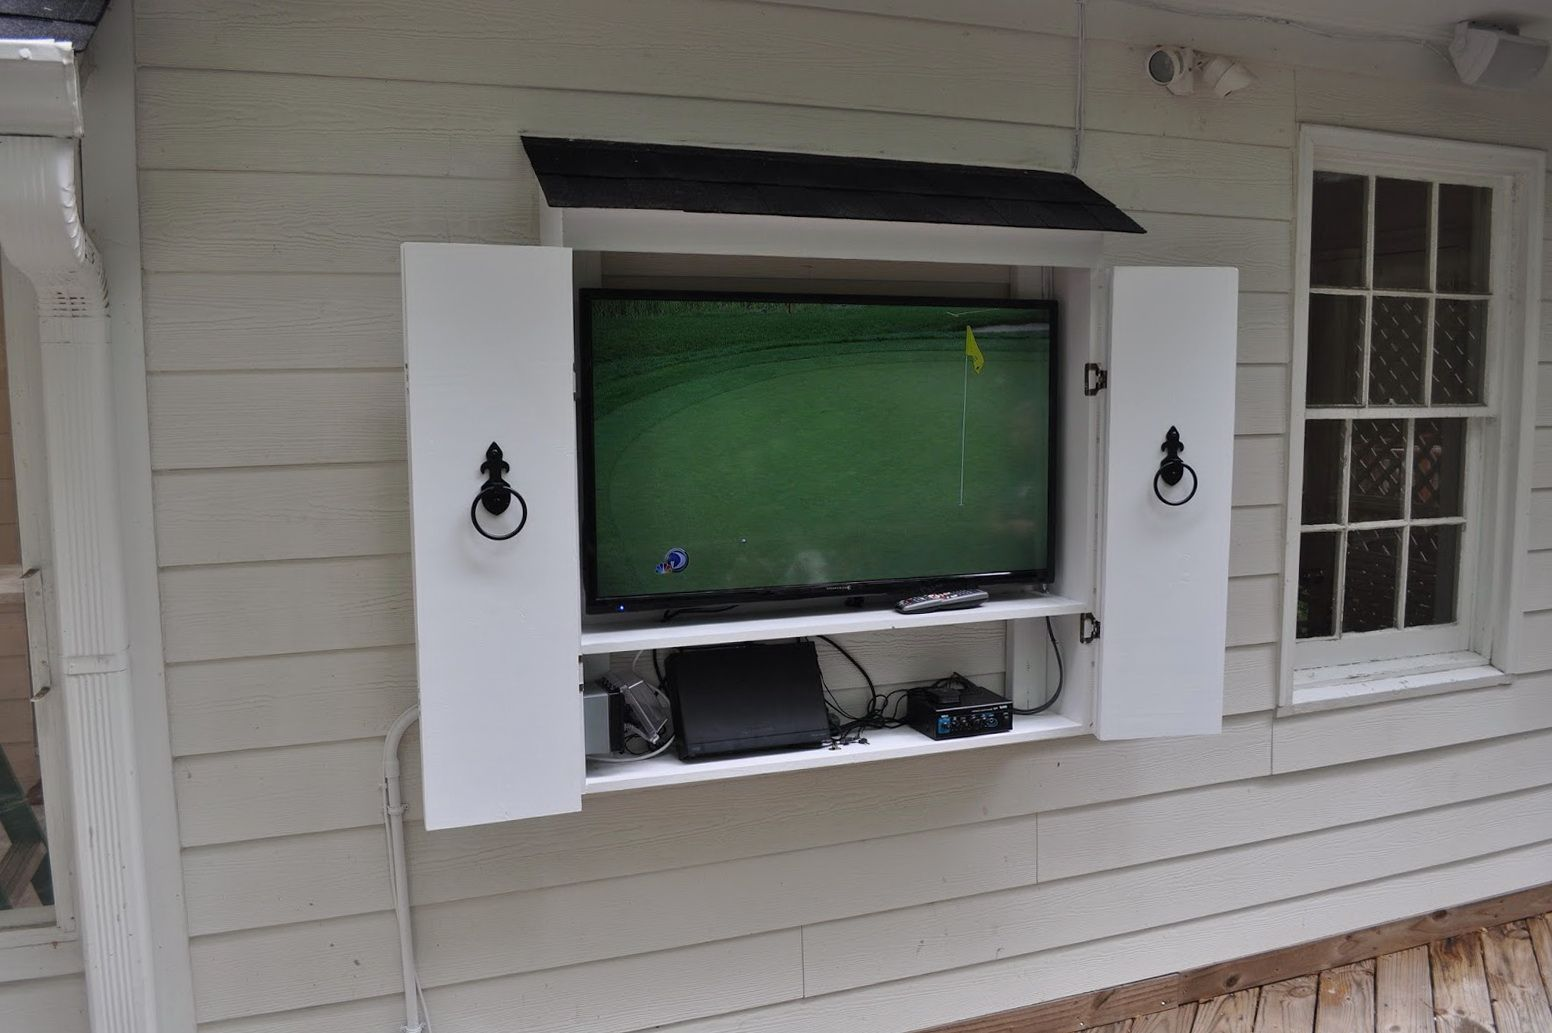 Outdoor Tv Cabinet Diy Outdoor Tv Cabinet Diy Tv Wall Mount Wall Mounted Tv